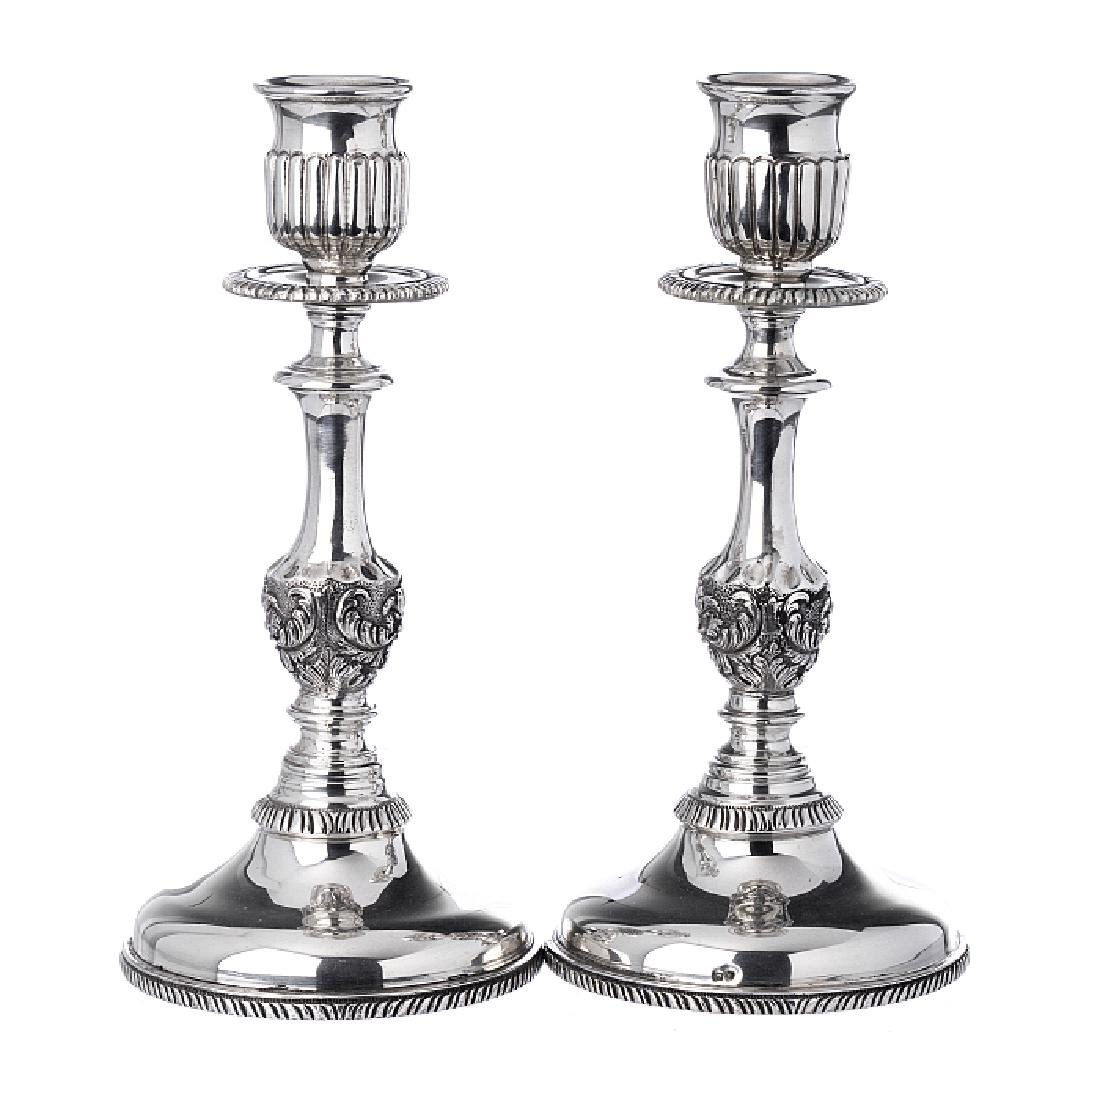 Pair of candlesticks in relieved silver